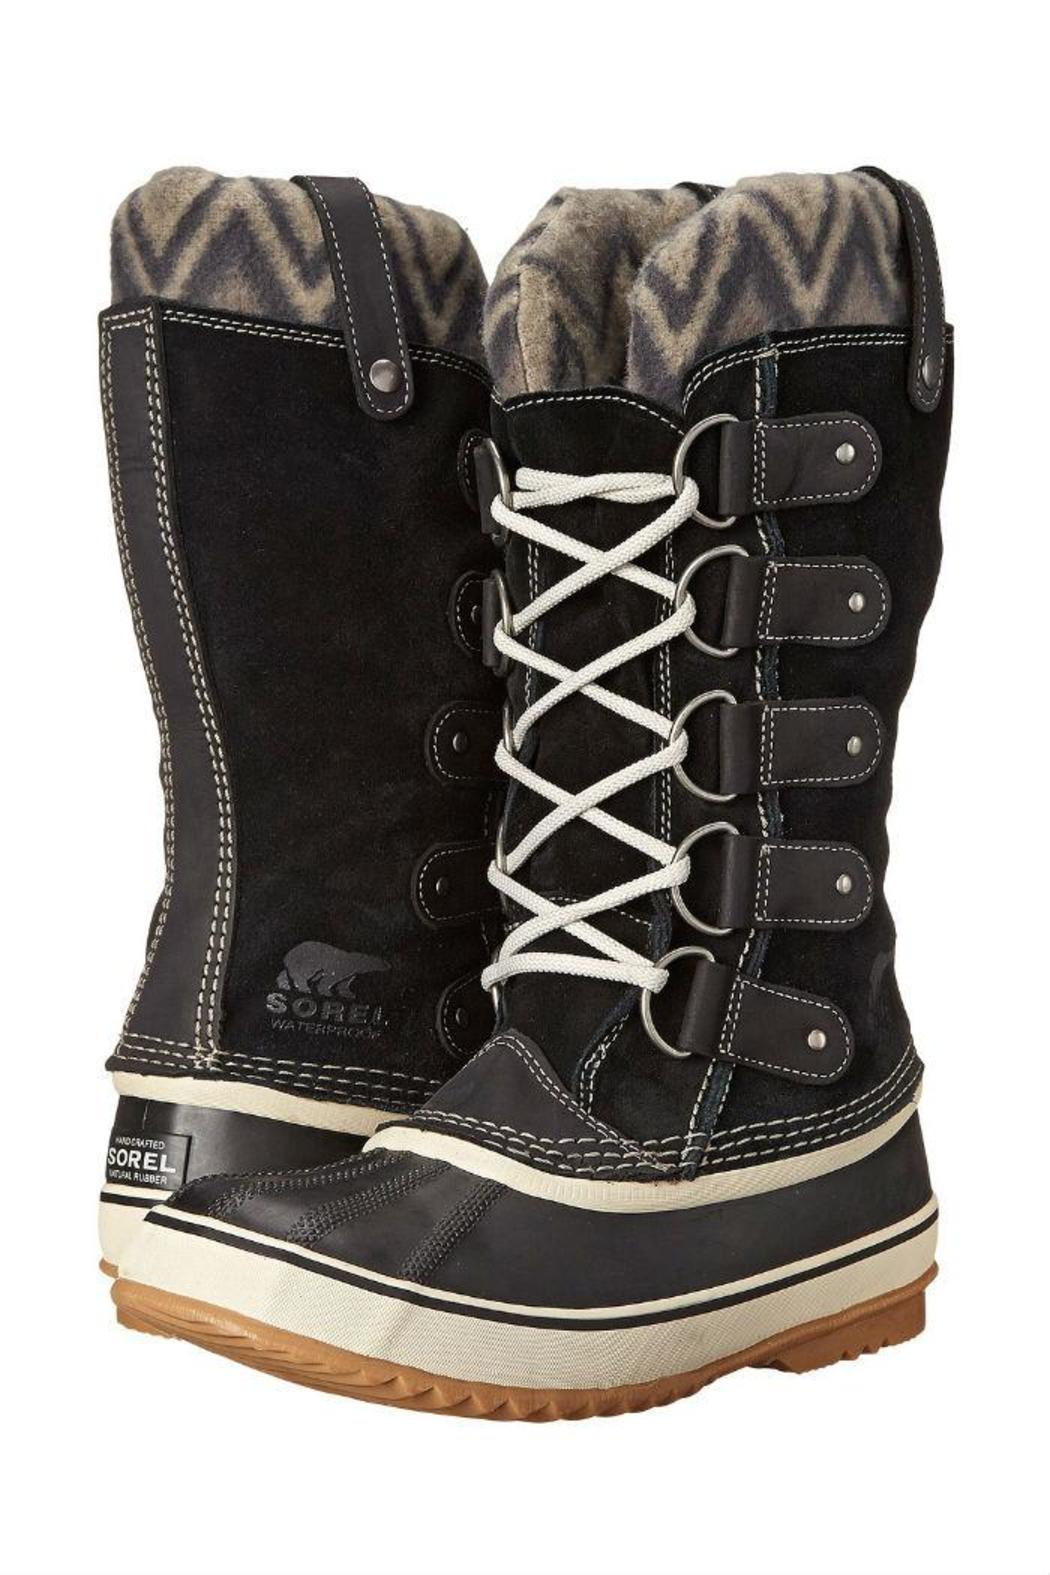 57d11050721a Sorel Tall Winter Boots from Canada by Modern Sole — Shoptiques